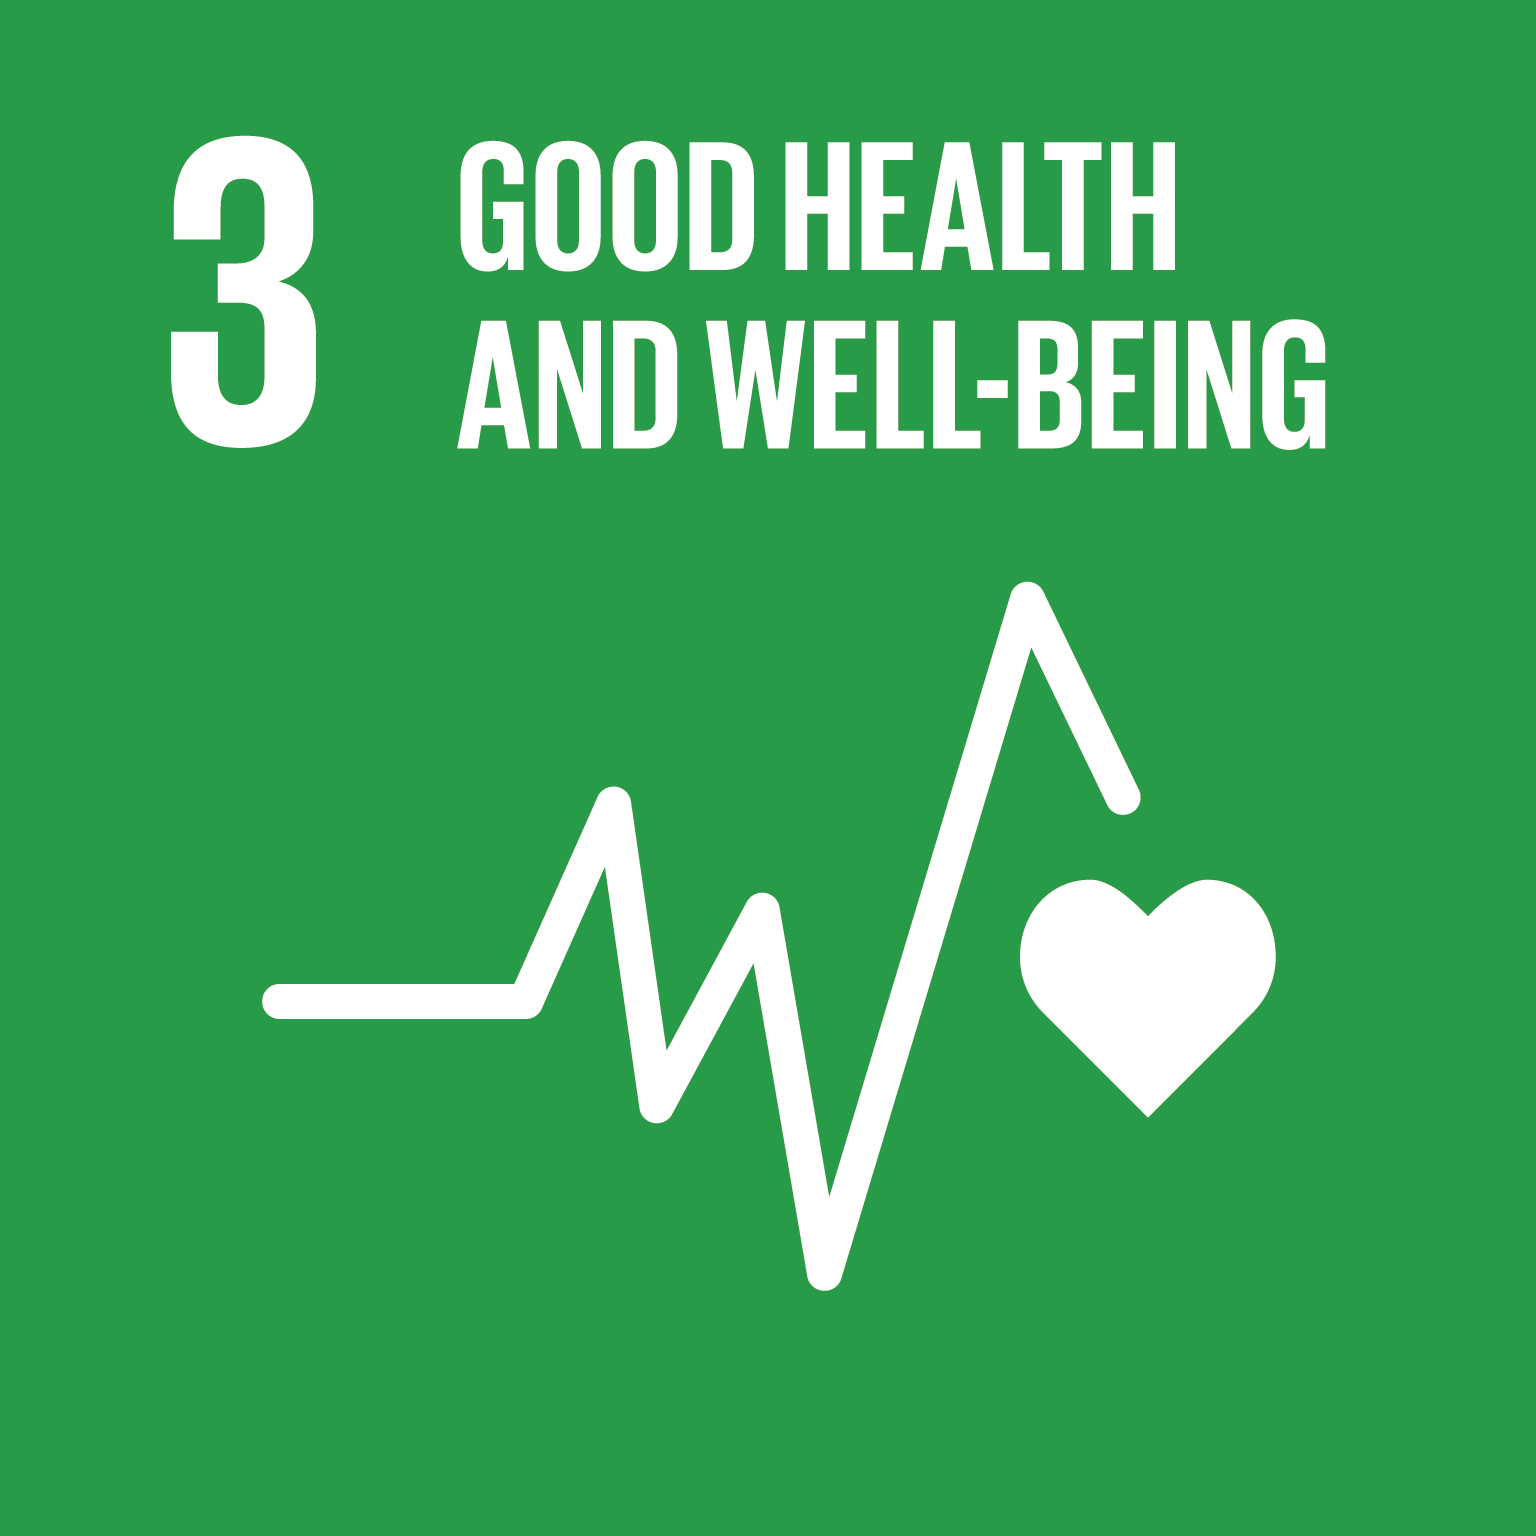 03 Good Health and Well-Being SDG